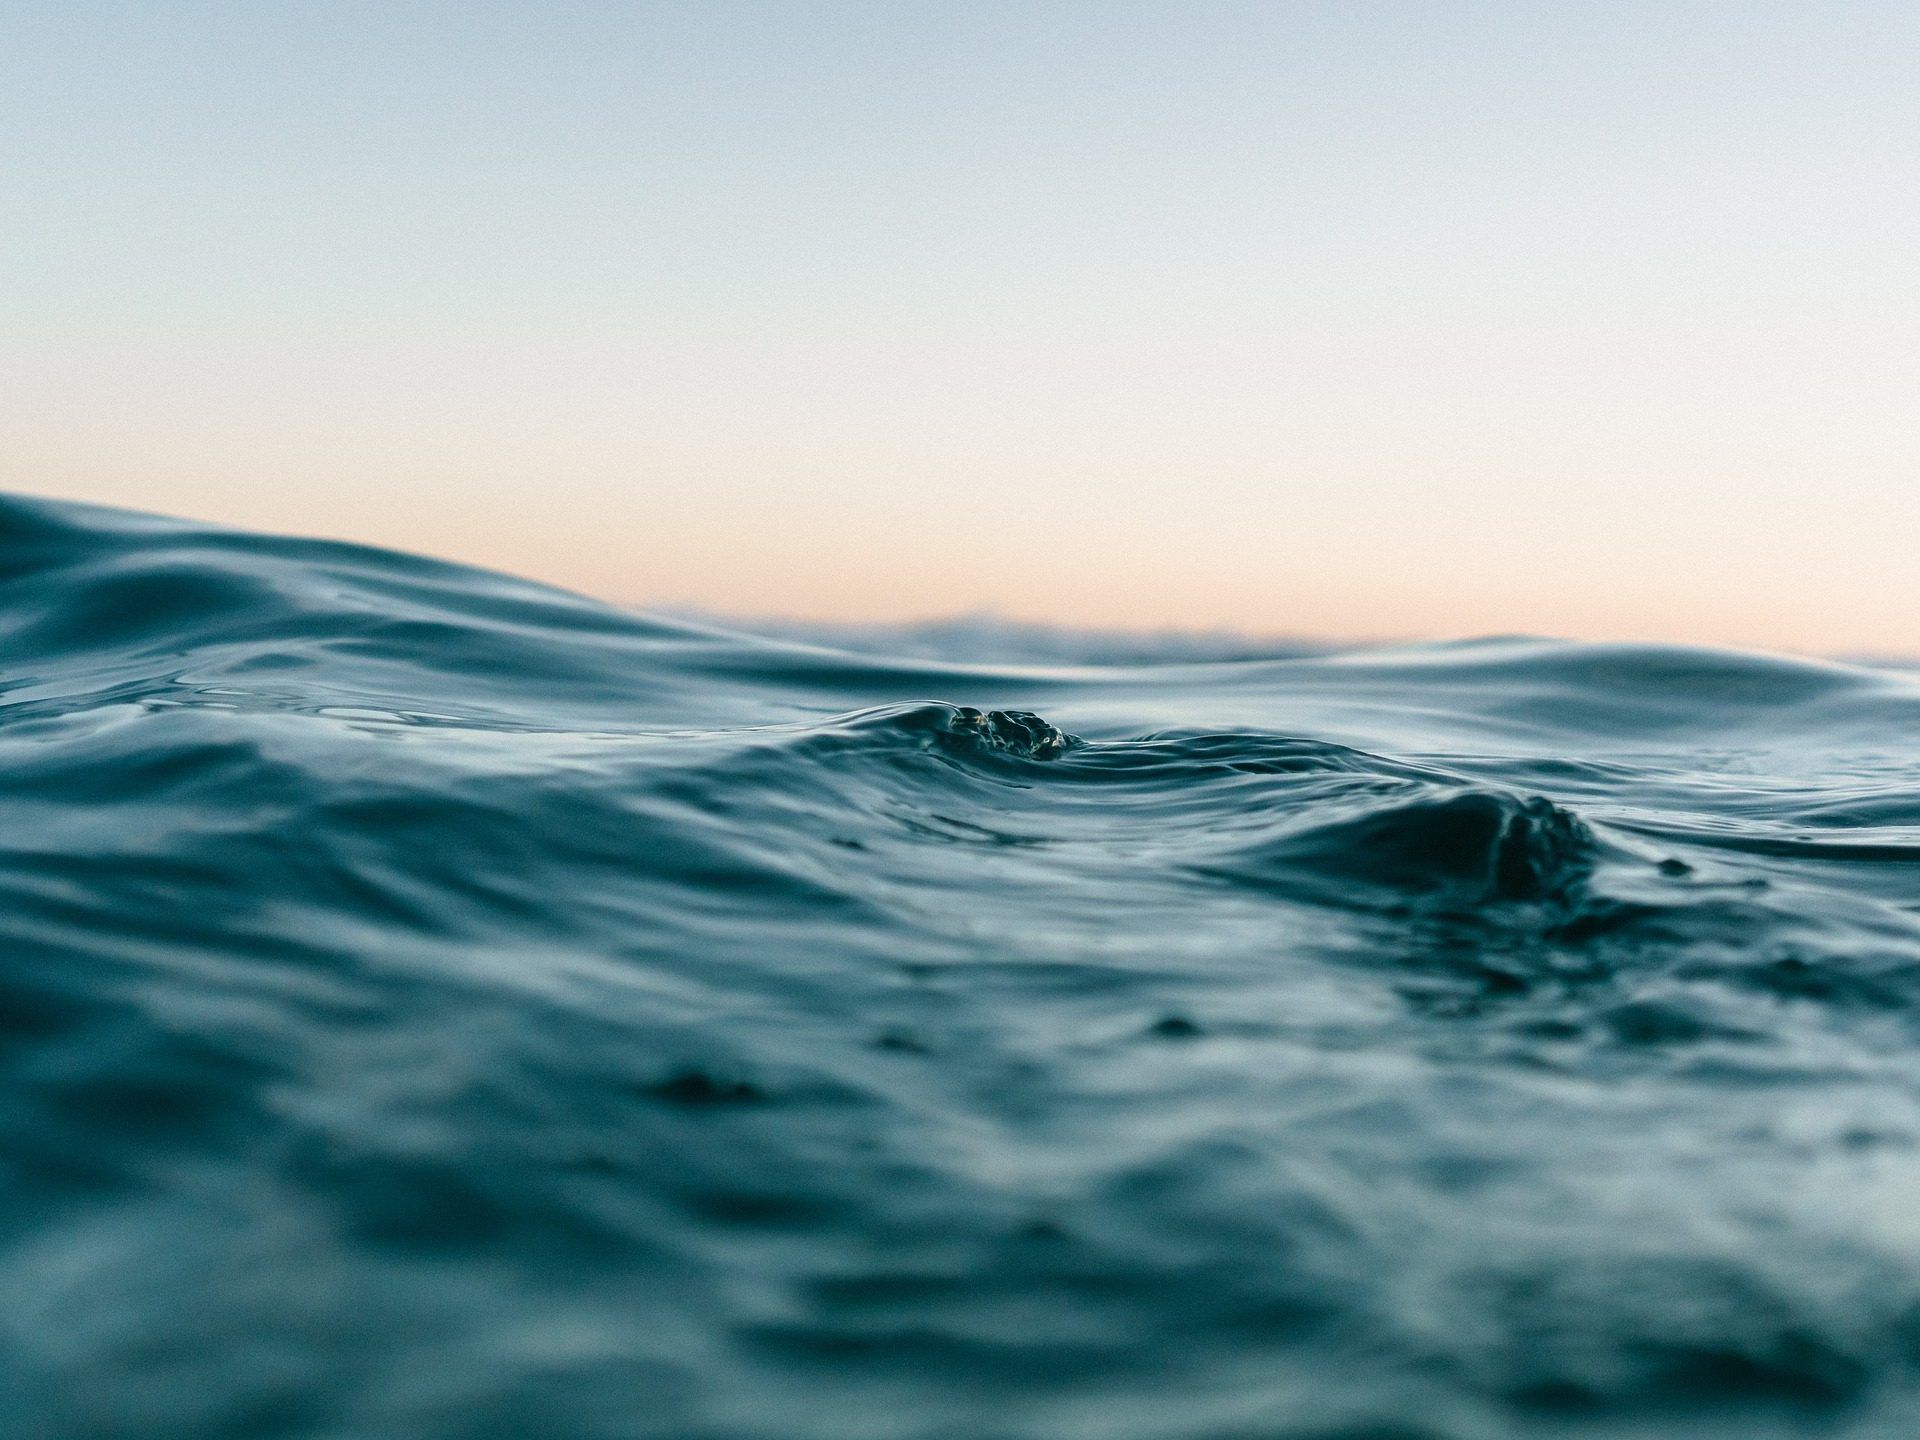 water-4119268_1920